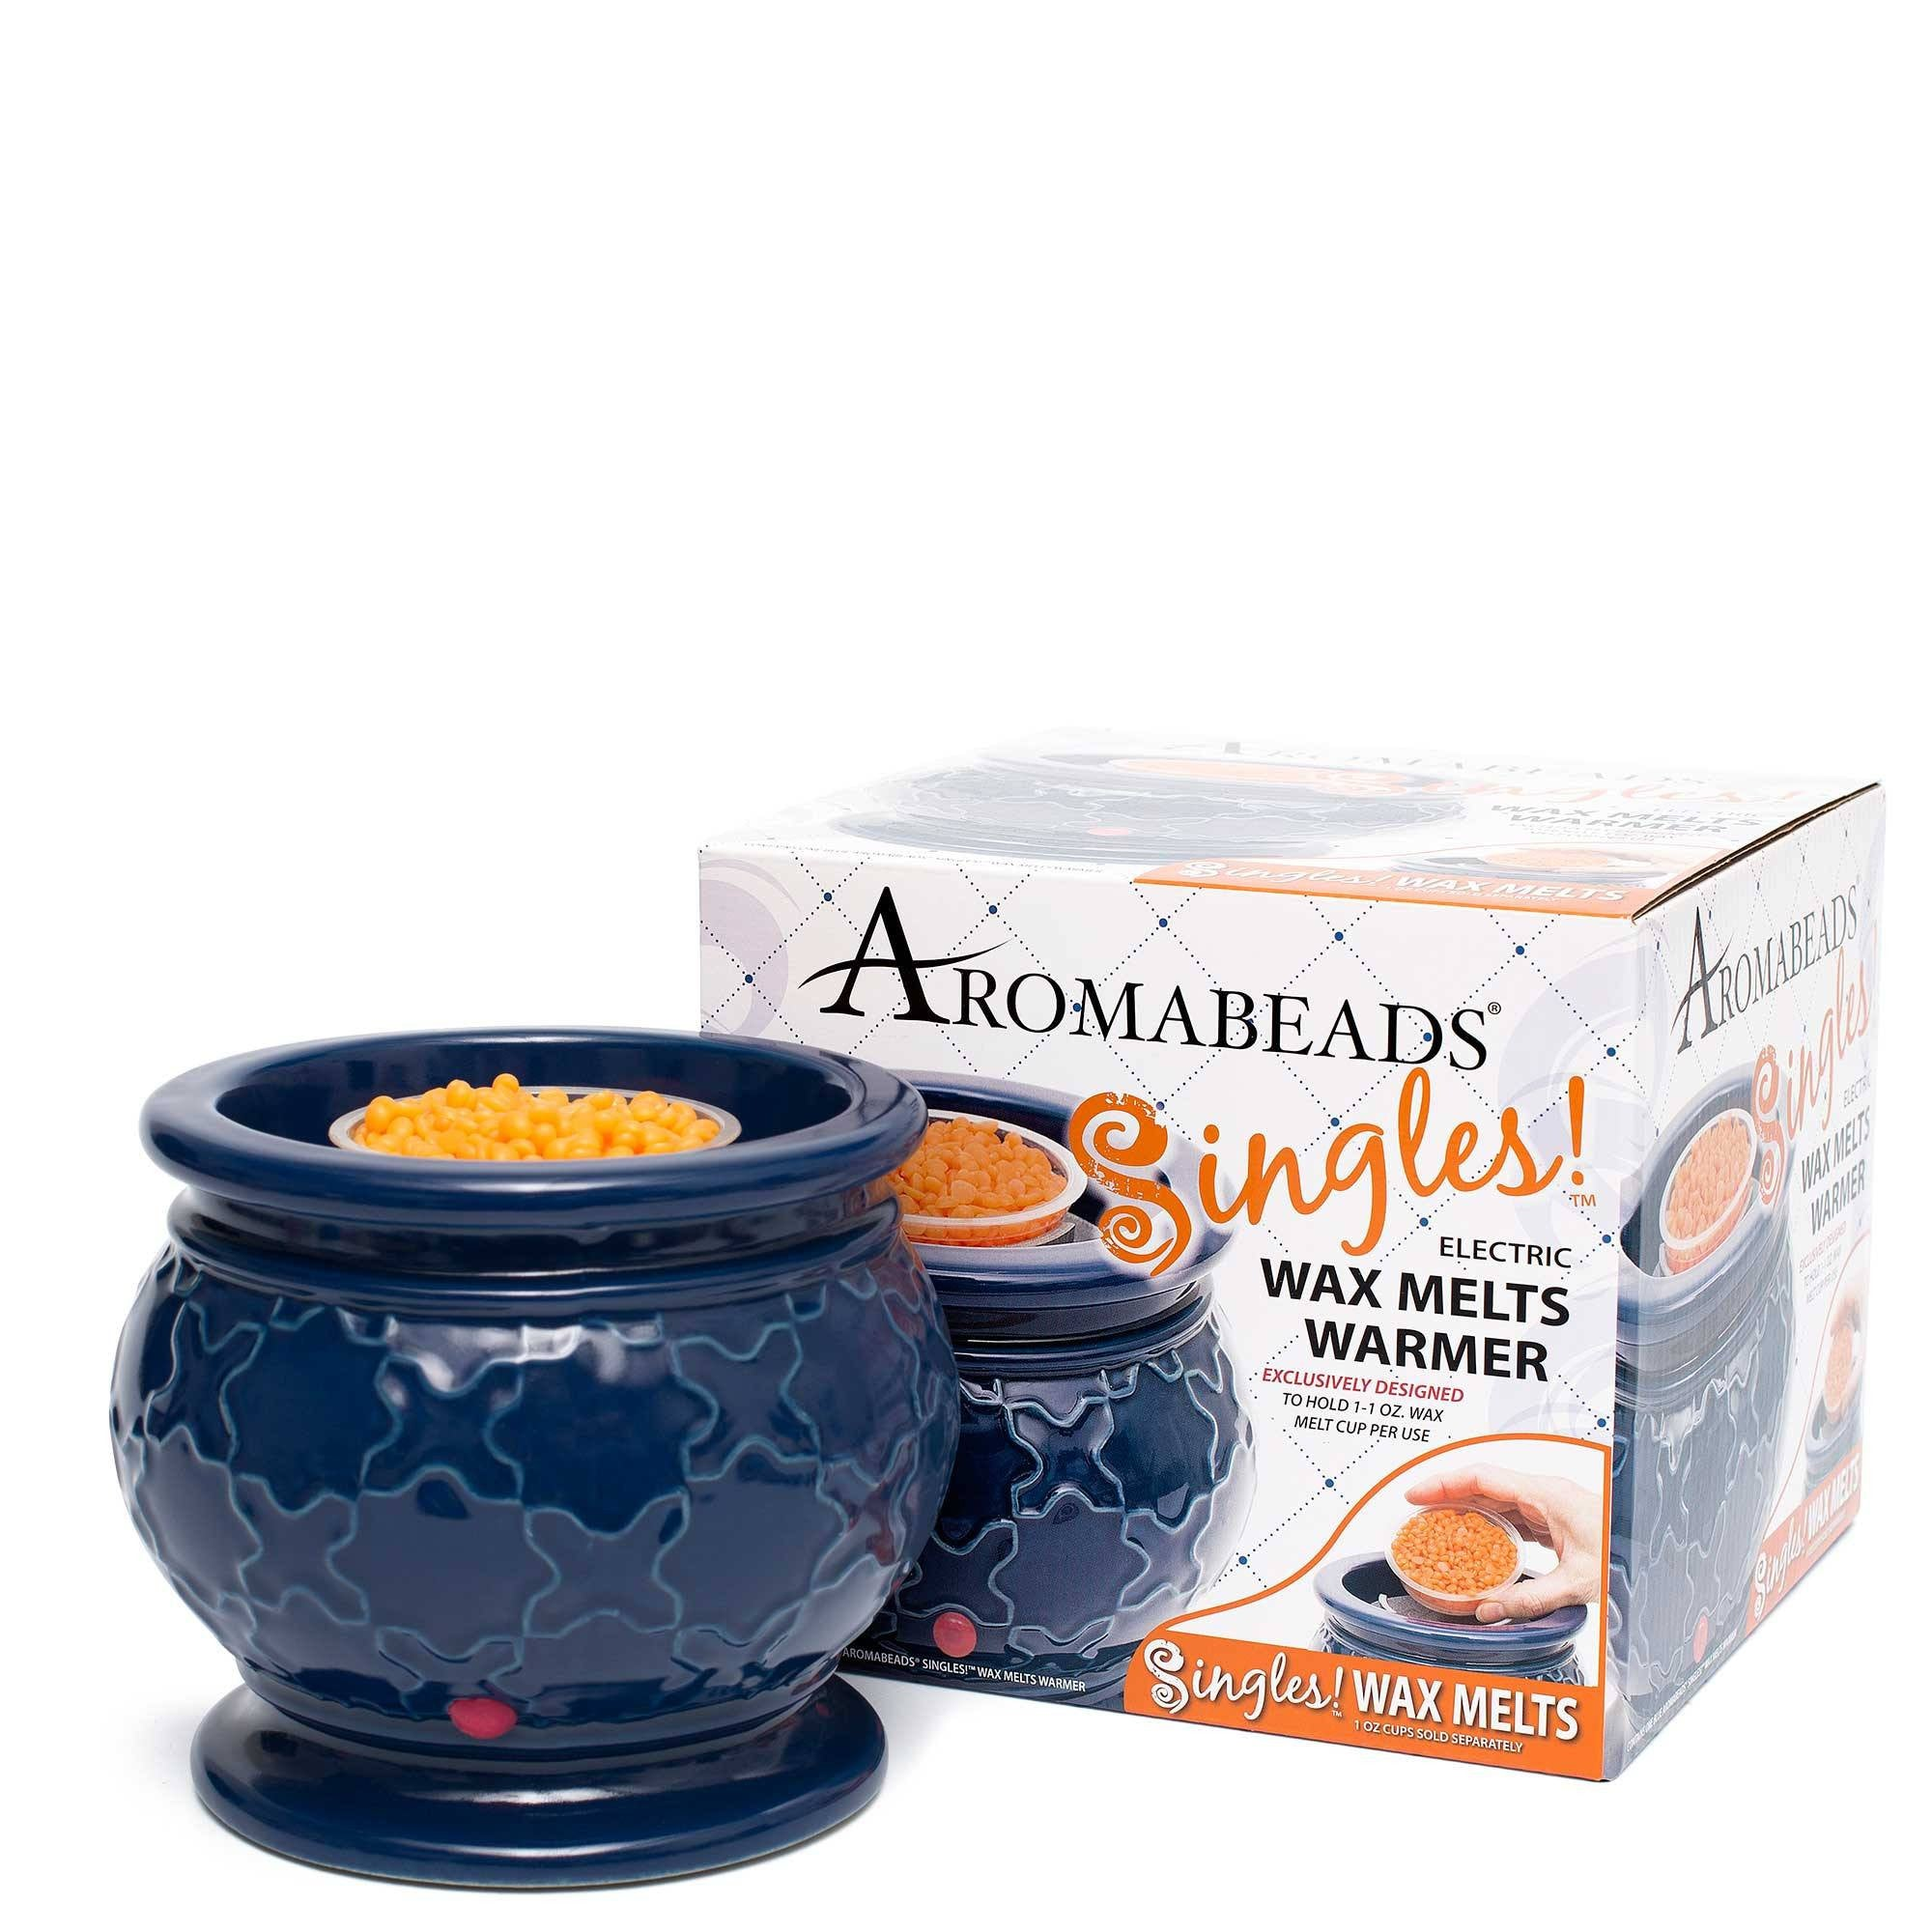 Aromabeads Singles Sparkling Citrus Zest Scented Wax Melts - Candlemart.com - 3